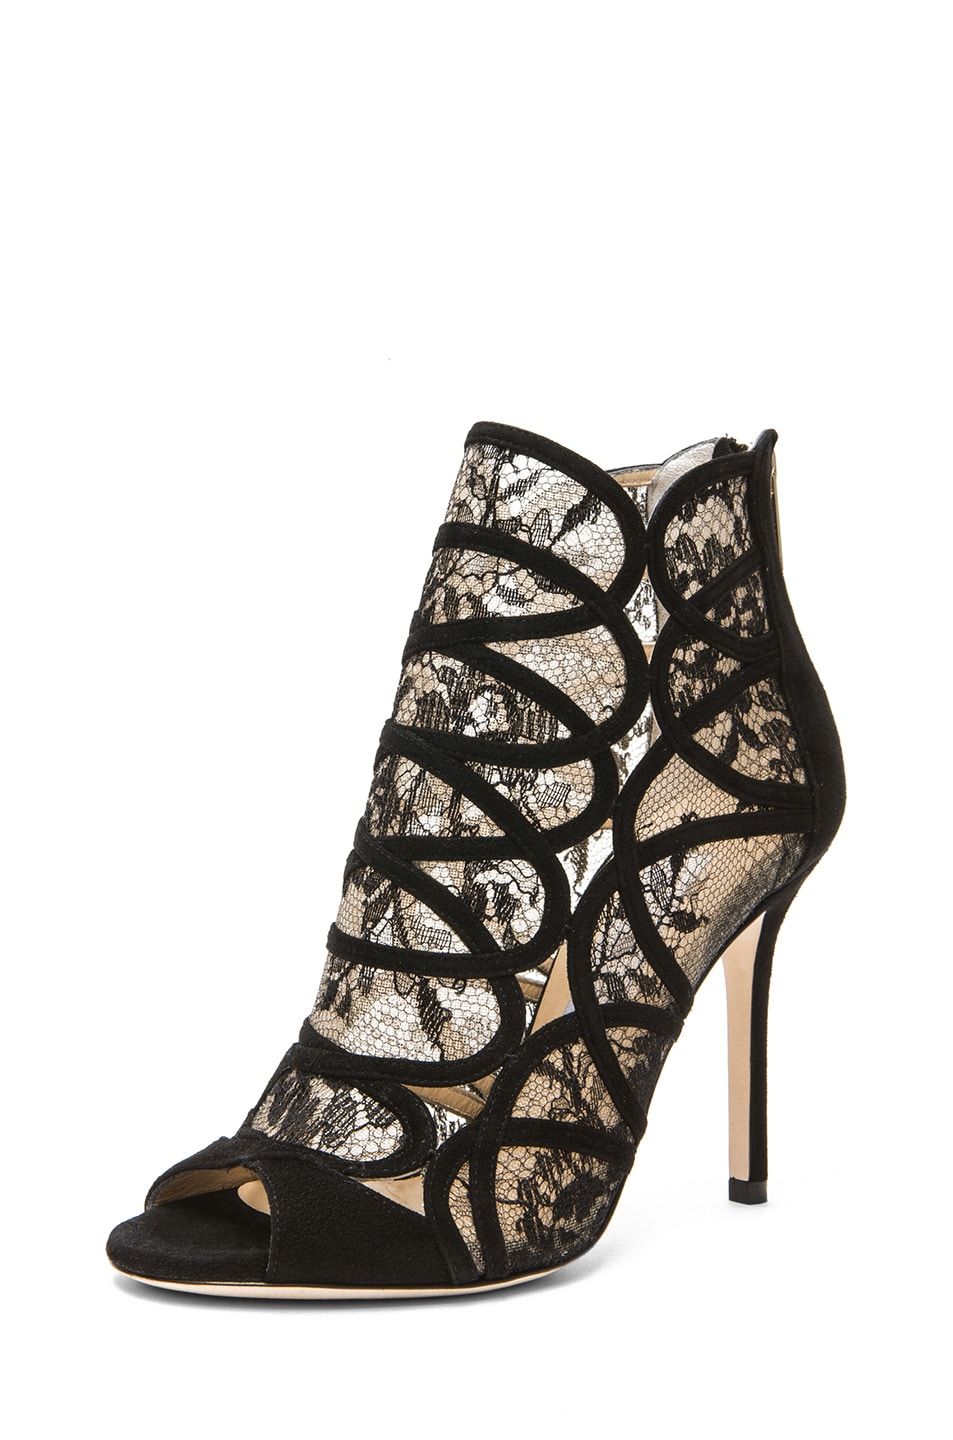 Image 2 of Jimmy Choo Fauna Suede Lace Booties in Black